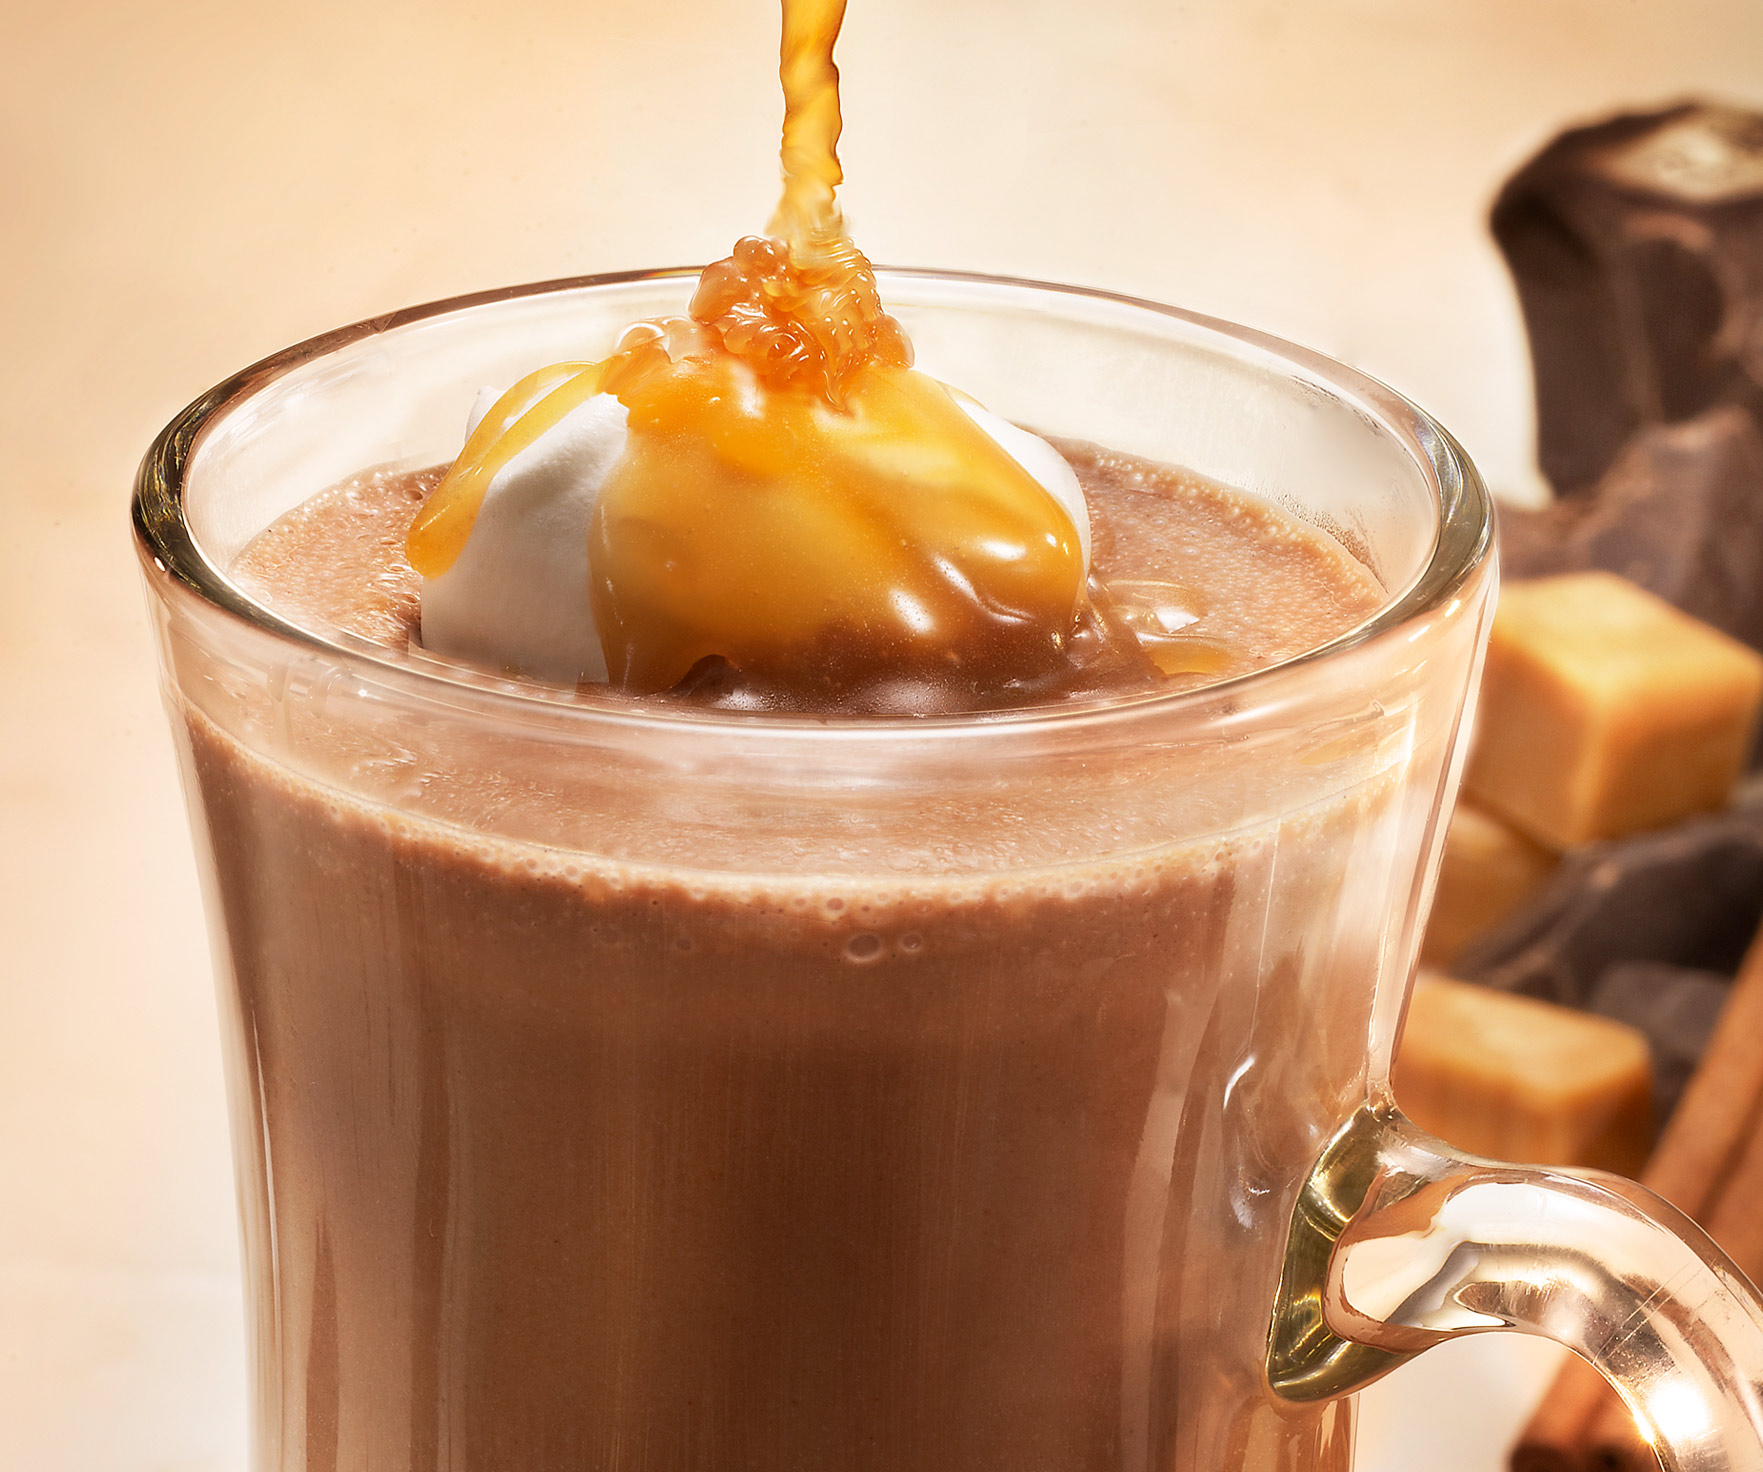 Glasshouse Assignment - David Bishop - Beverage Photography - Hot Chocolate with Caramel Pour